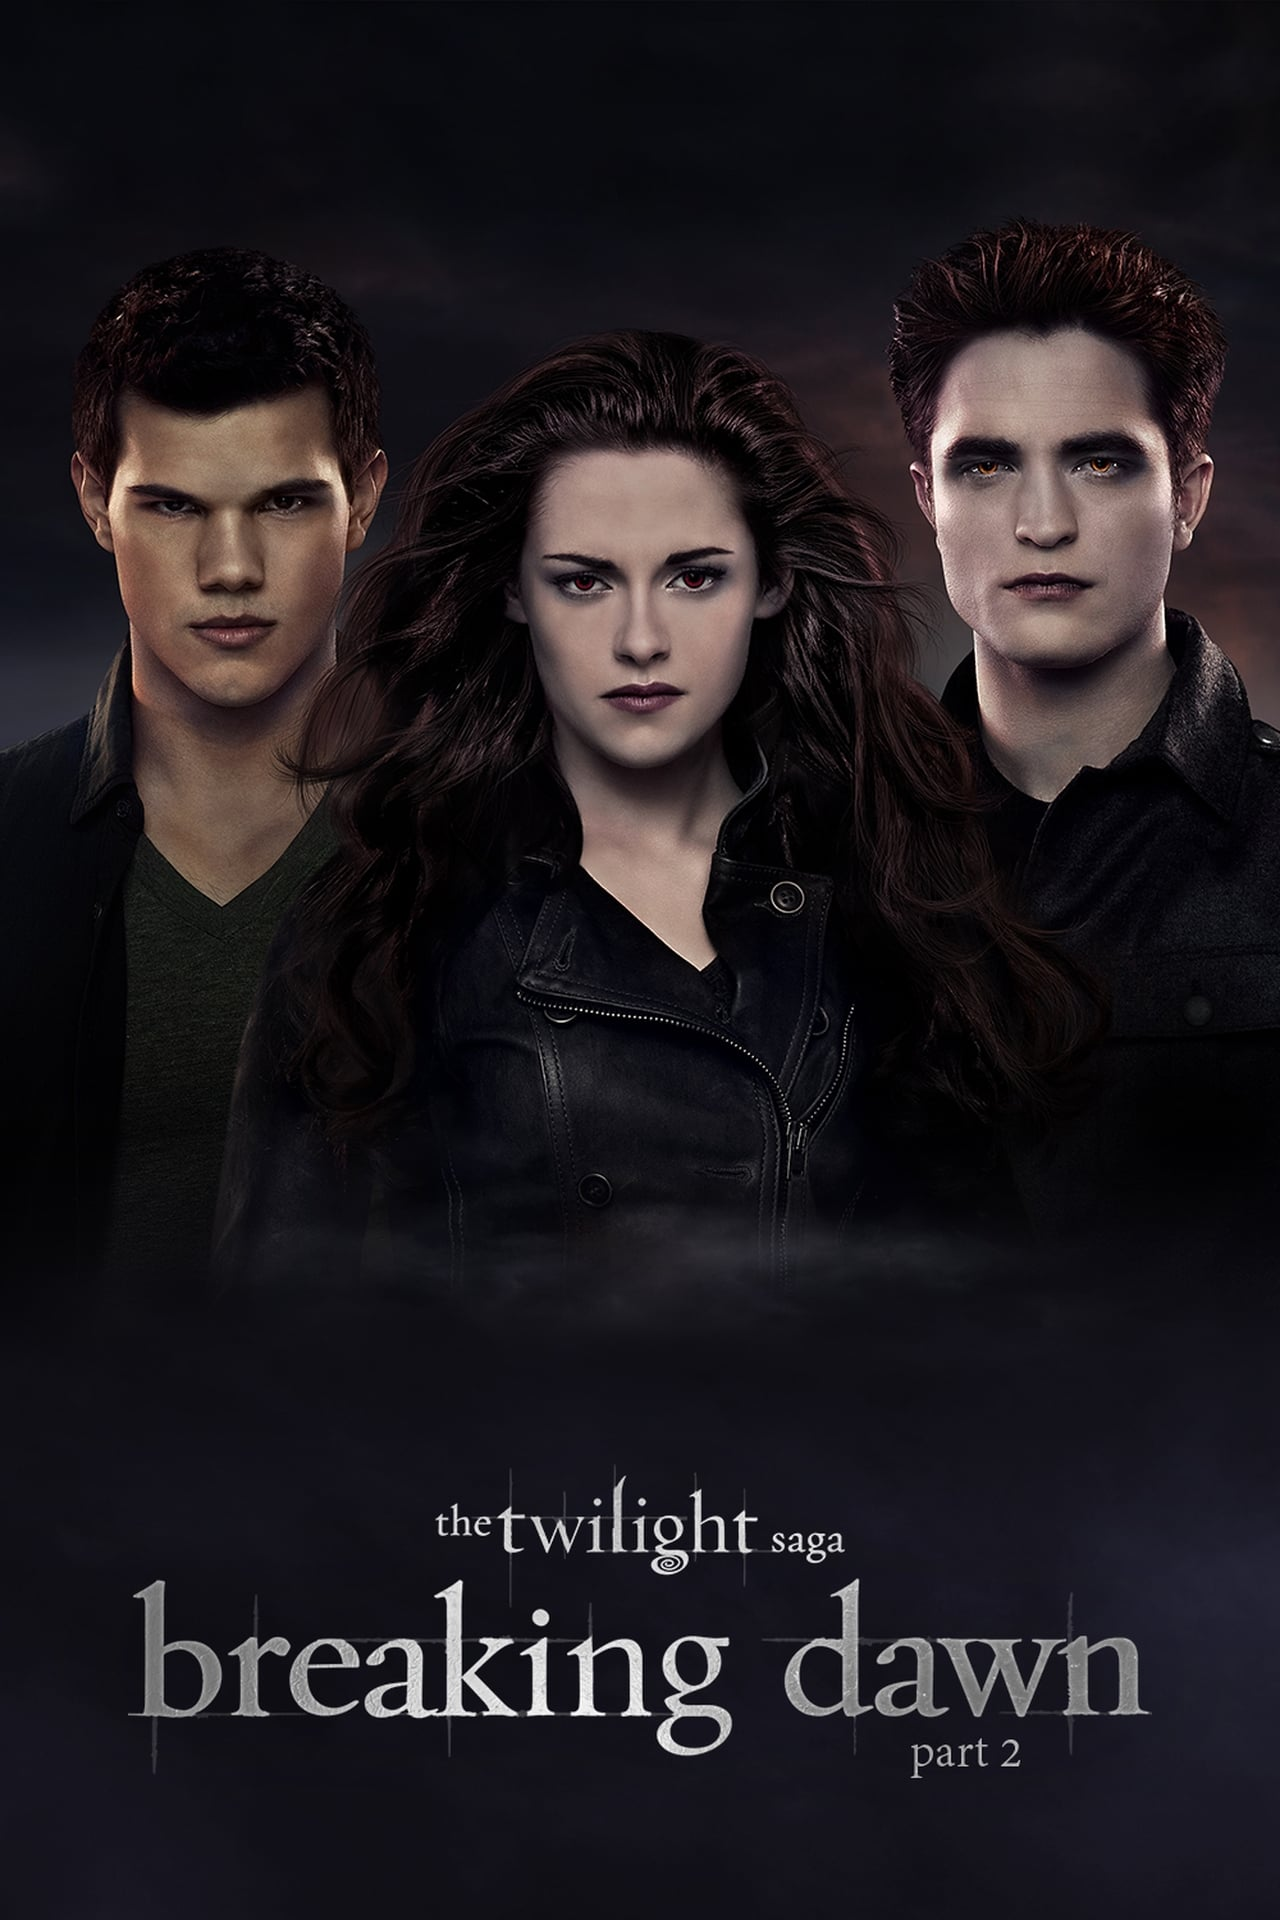 Download The Twilight Saga: Breaking Dawn – Part 2 (2012) [Hindi-English] 480p [350MB] | 720p [850MB] | 1080p [3.7GB]